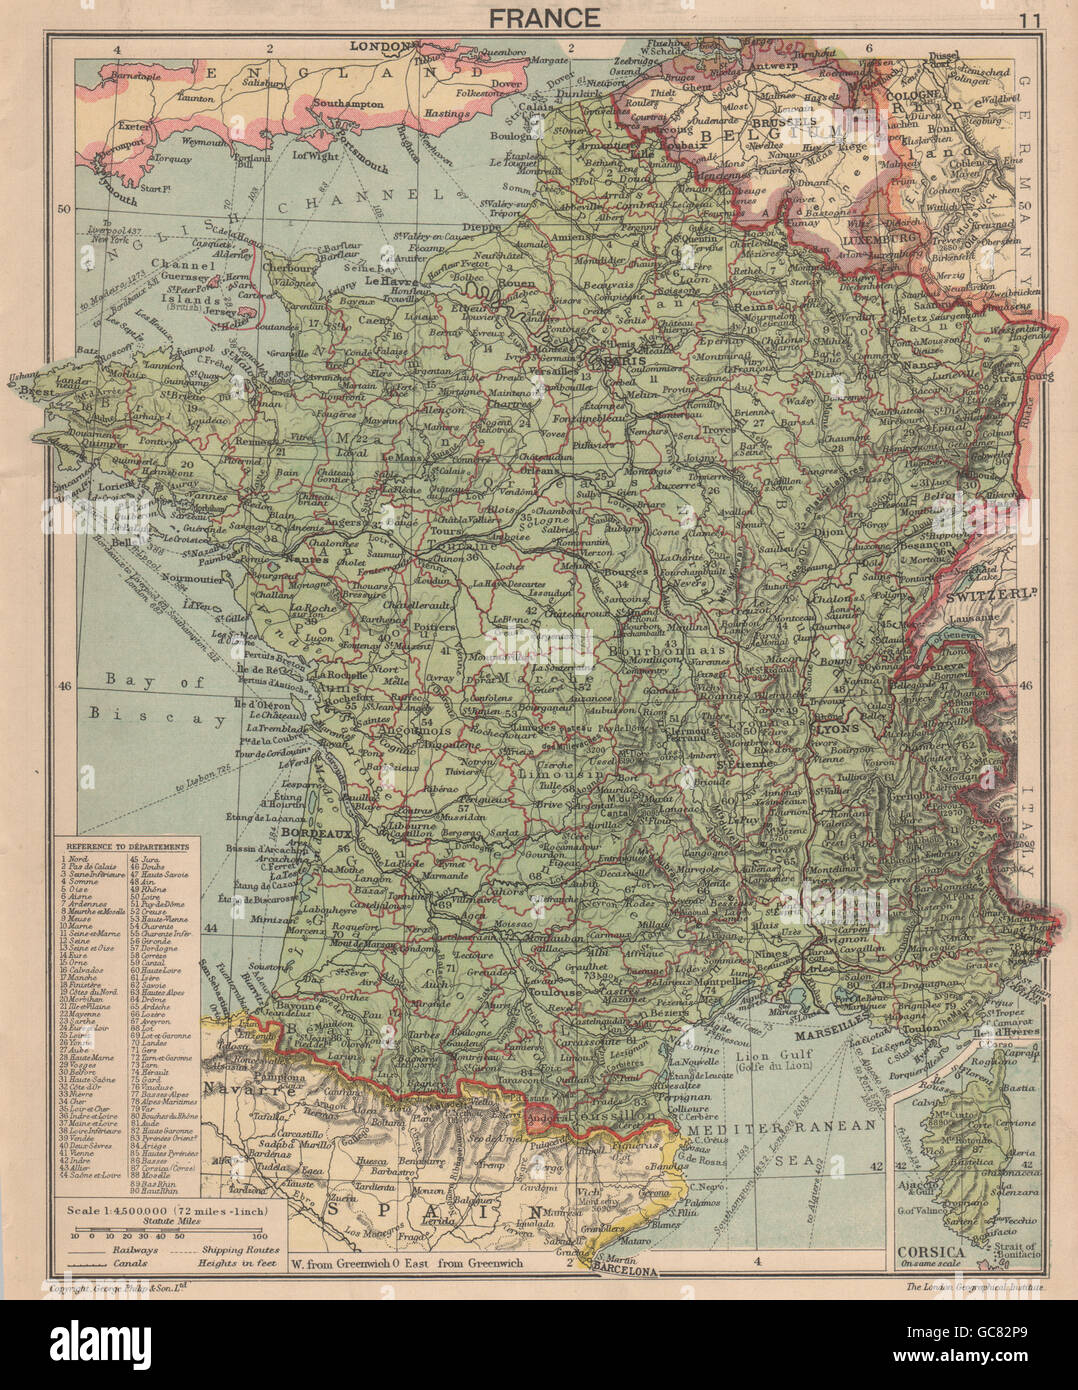 Second world war france in 1940 pre invasion 1940 vintage map second world war france in 1940 pre invasion 1940 vintage map gumiabroncs Gallery